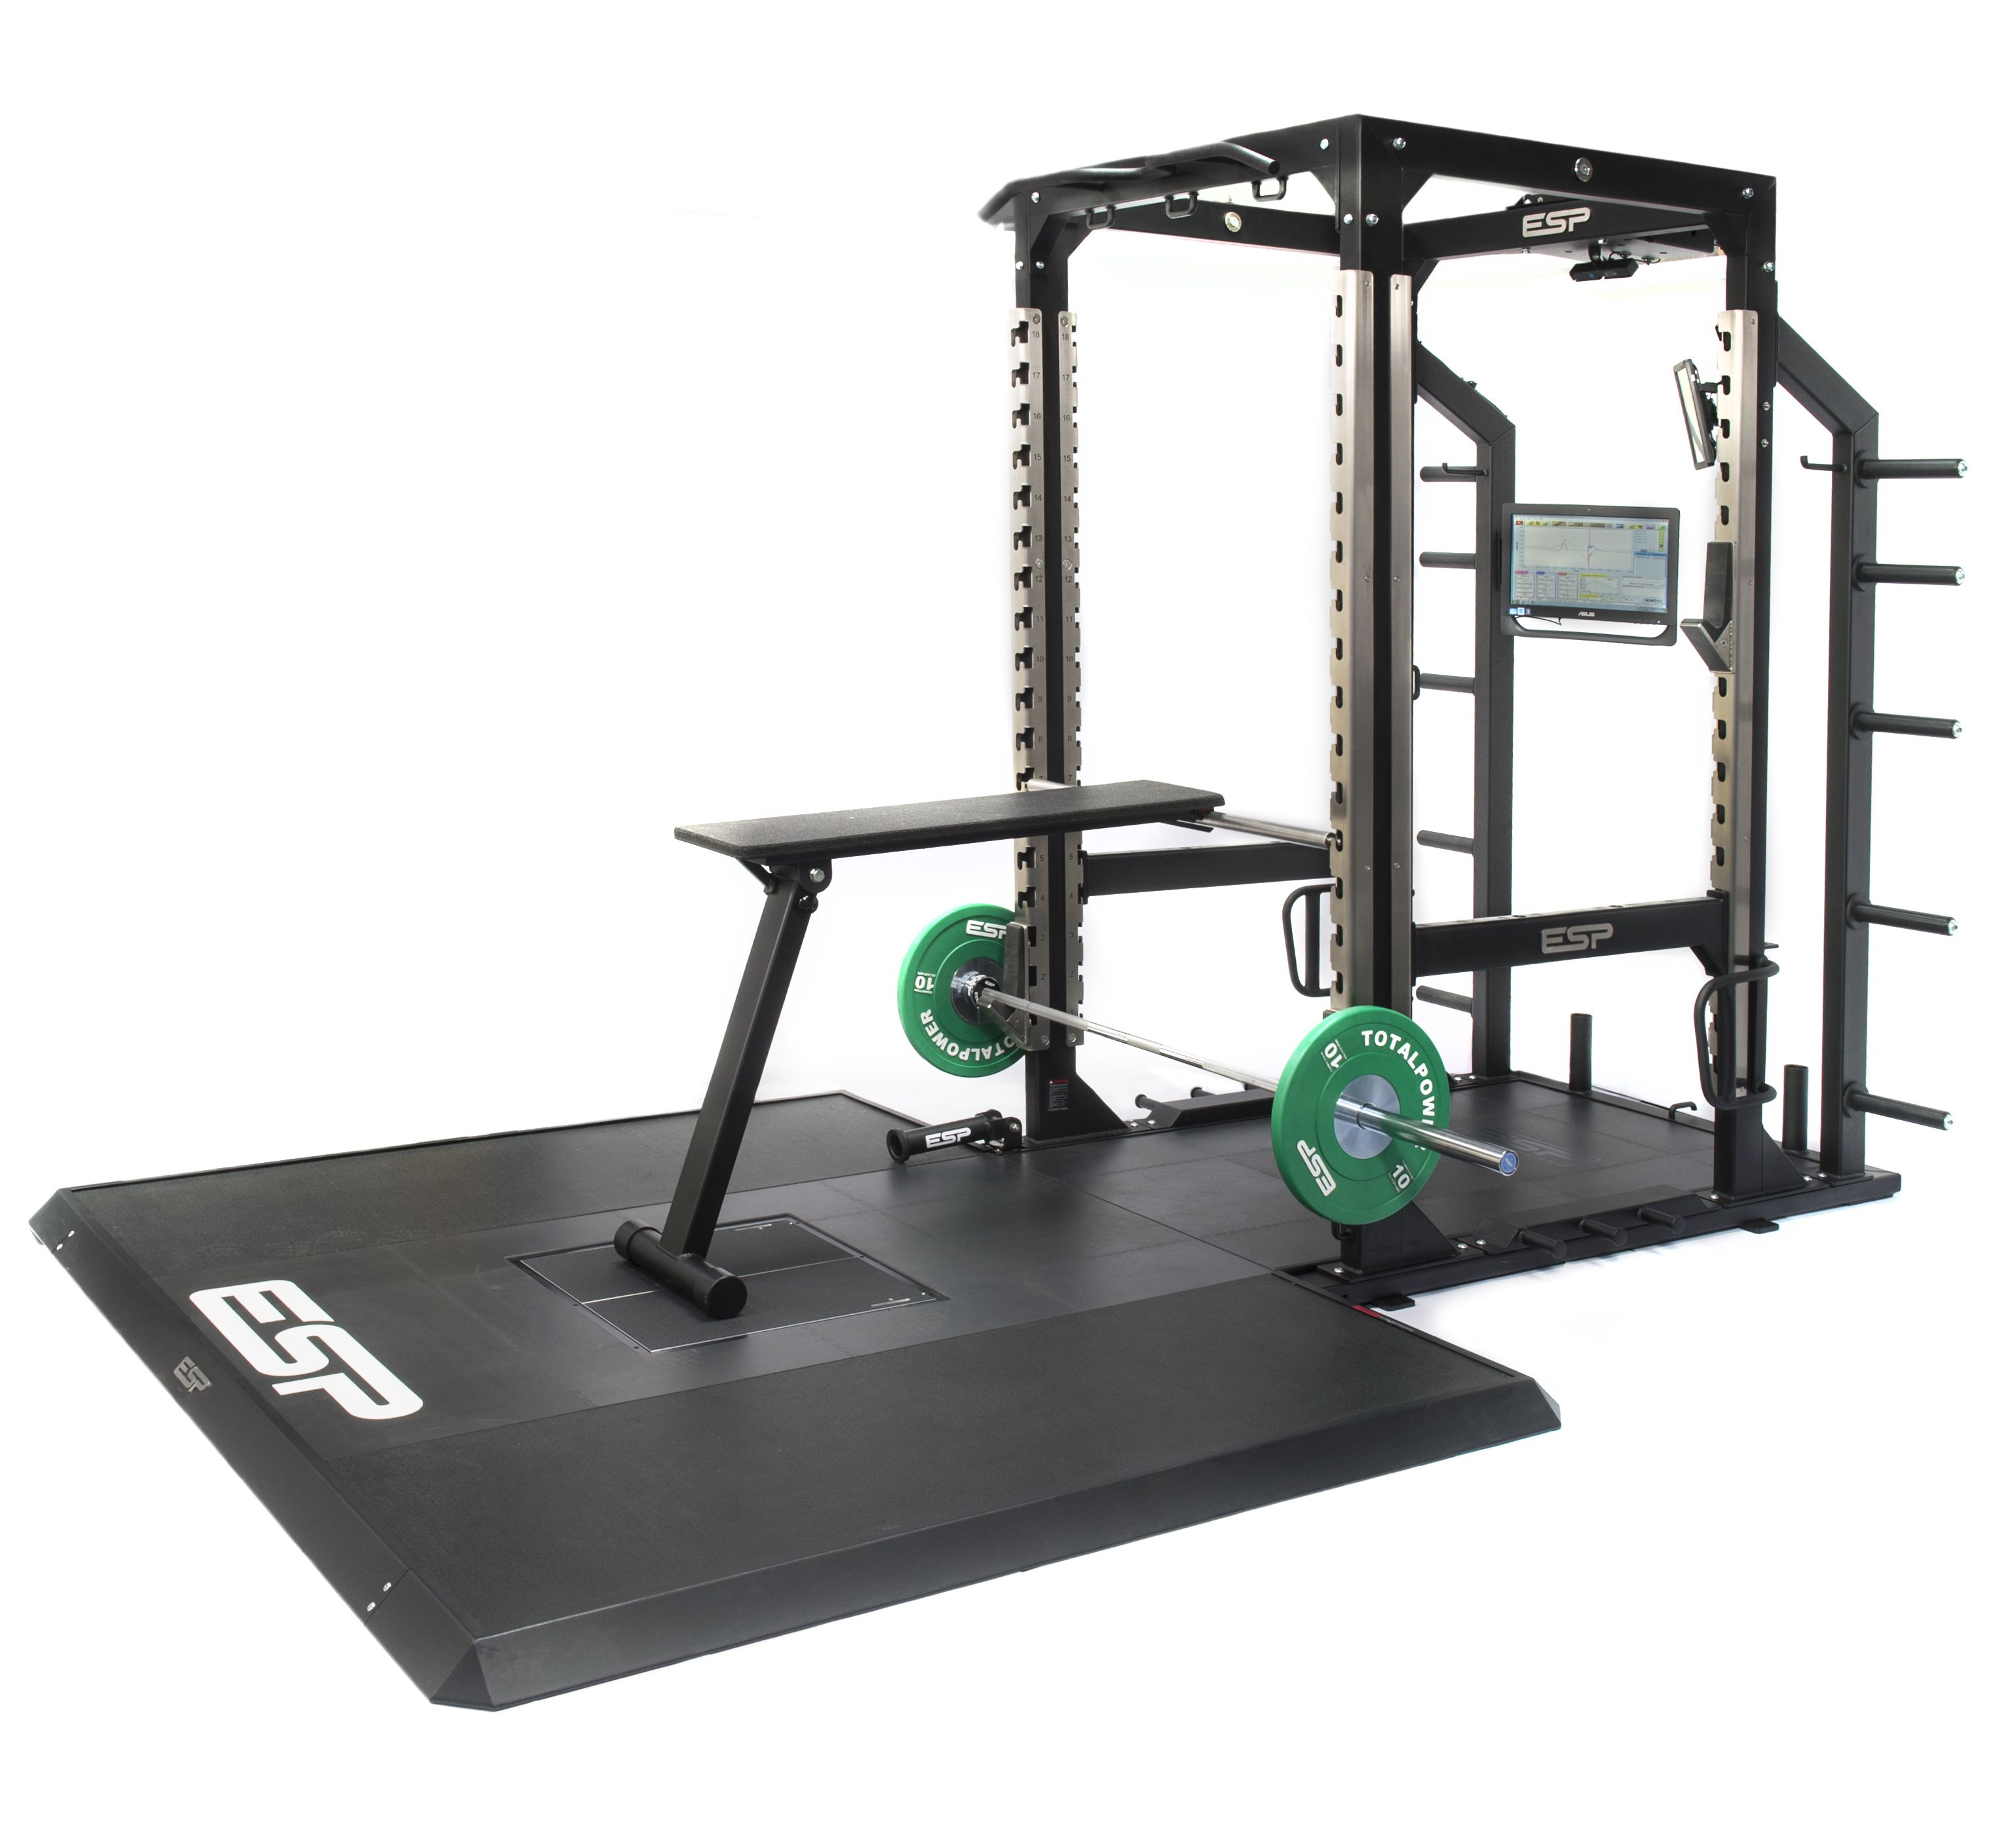 review wall your maxresde build mounted rogue collapsible three ima for of again shark own youtube end fitness garage power canada folding rack diy tank uk australia nz squat